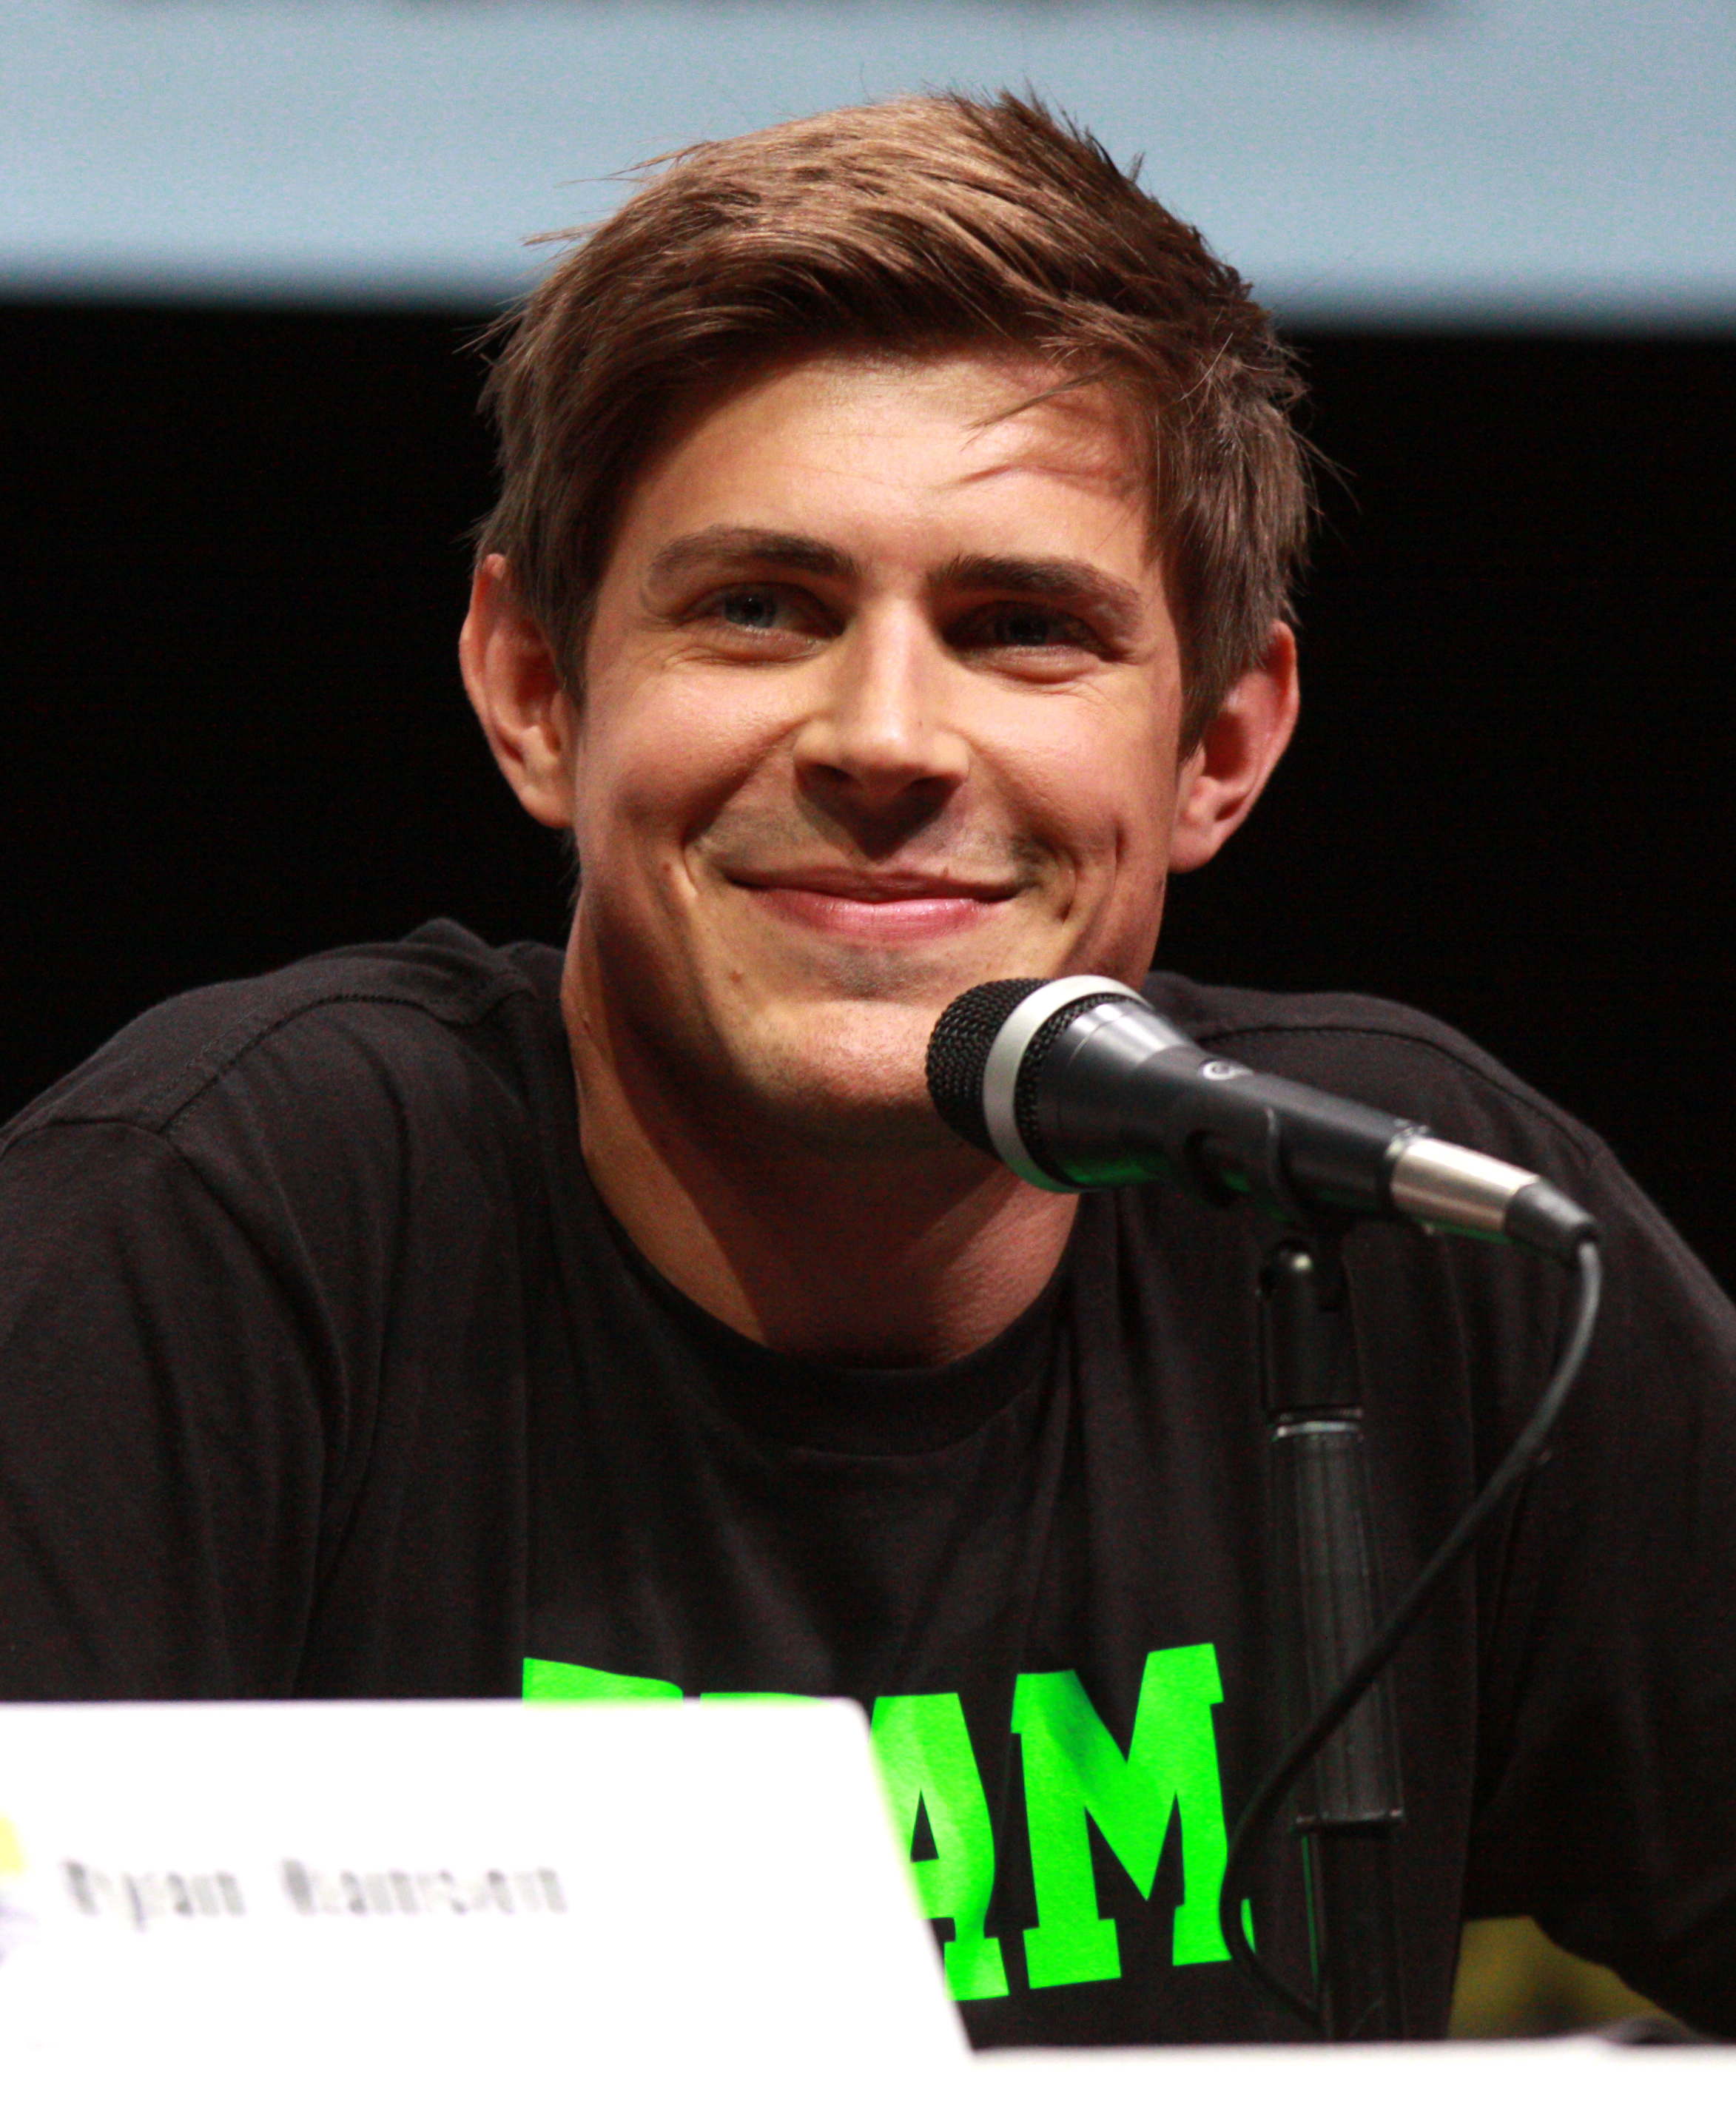 The 34-year old son of father (?) and mother(?) Chris Lowell in 2018 photo. Chris Lowell earned a  million dollar salary - leaving the net worth at 0.7 million in 2018